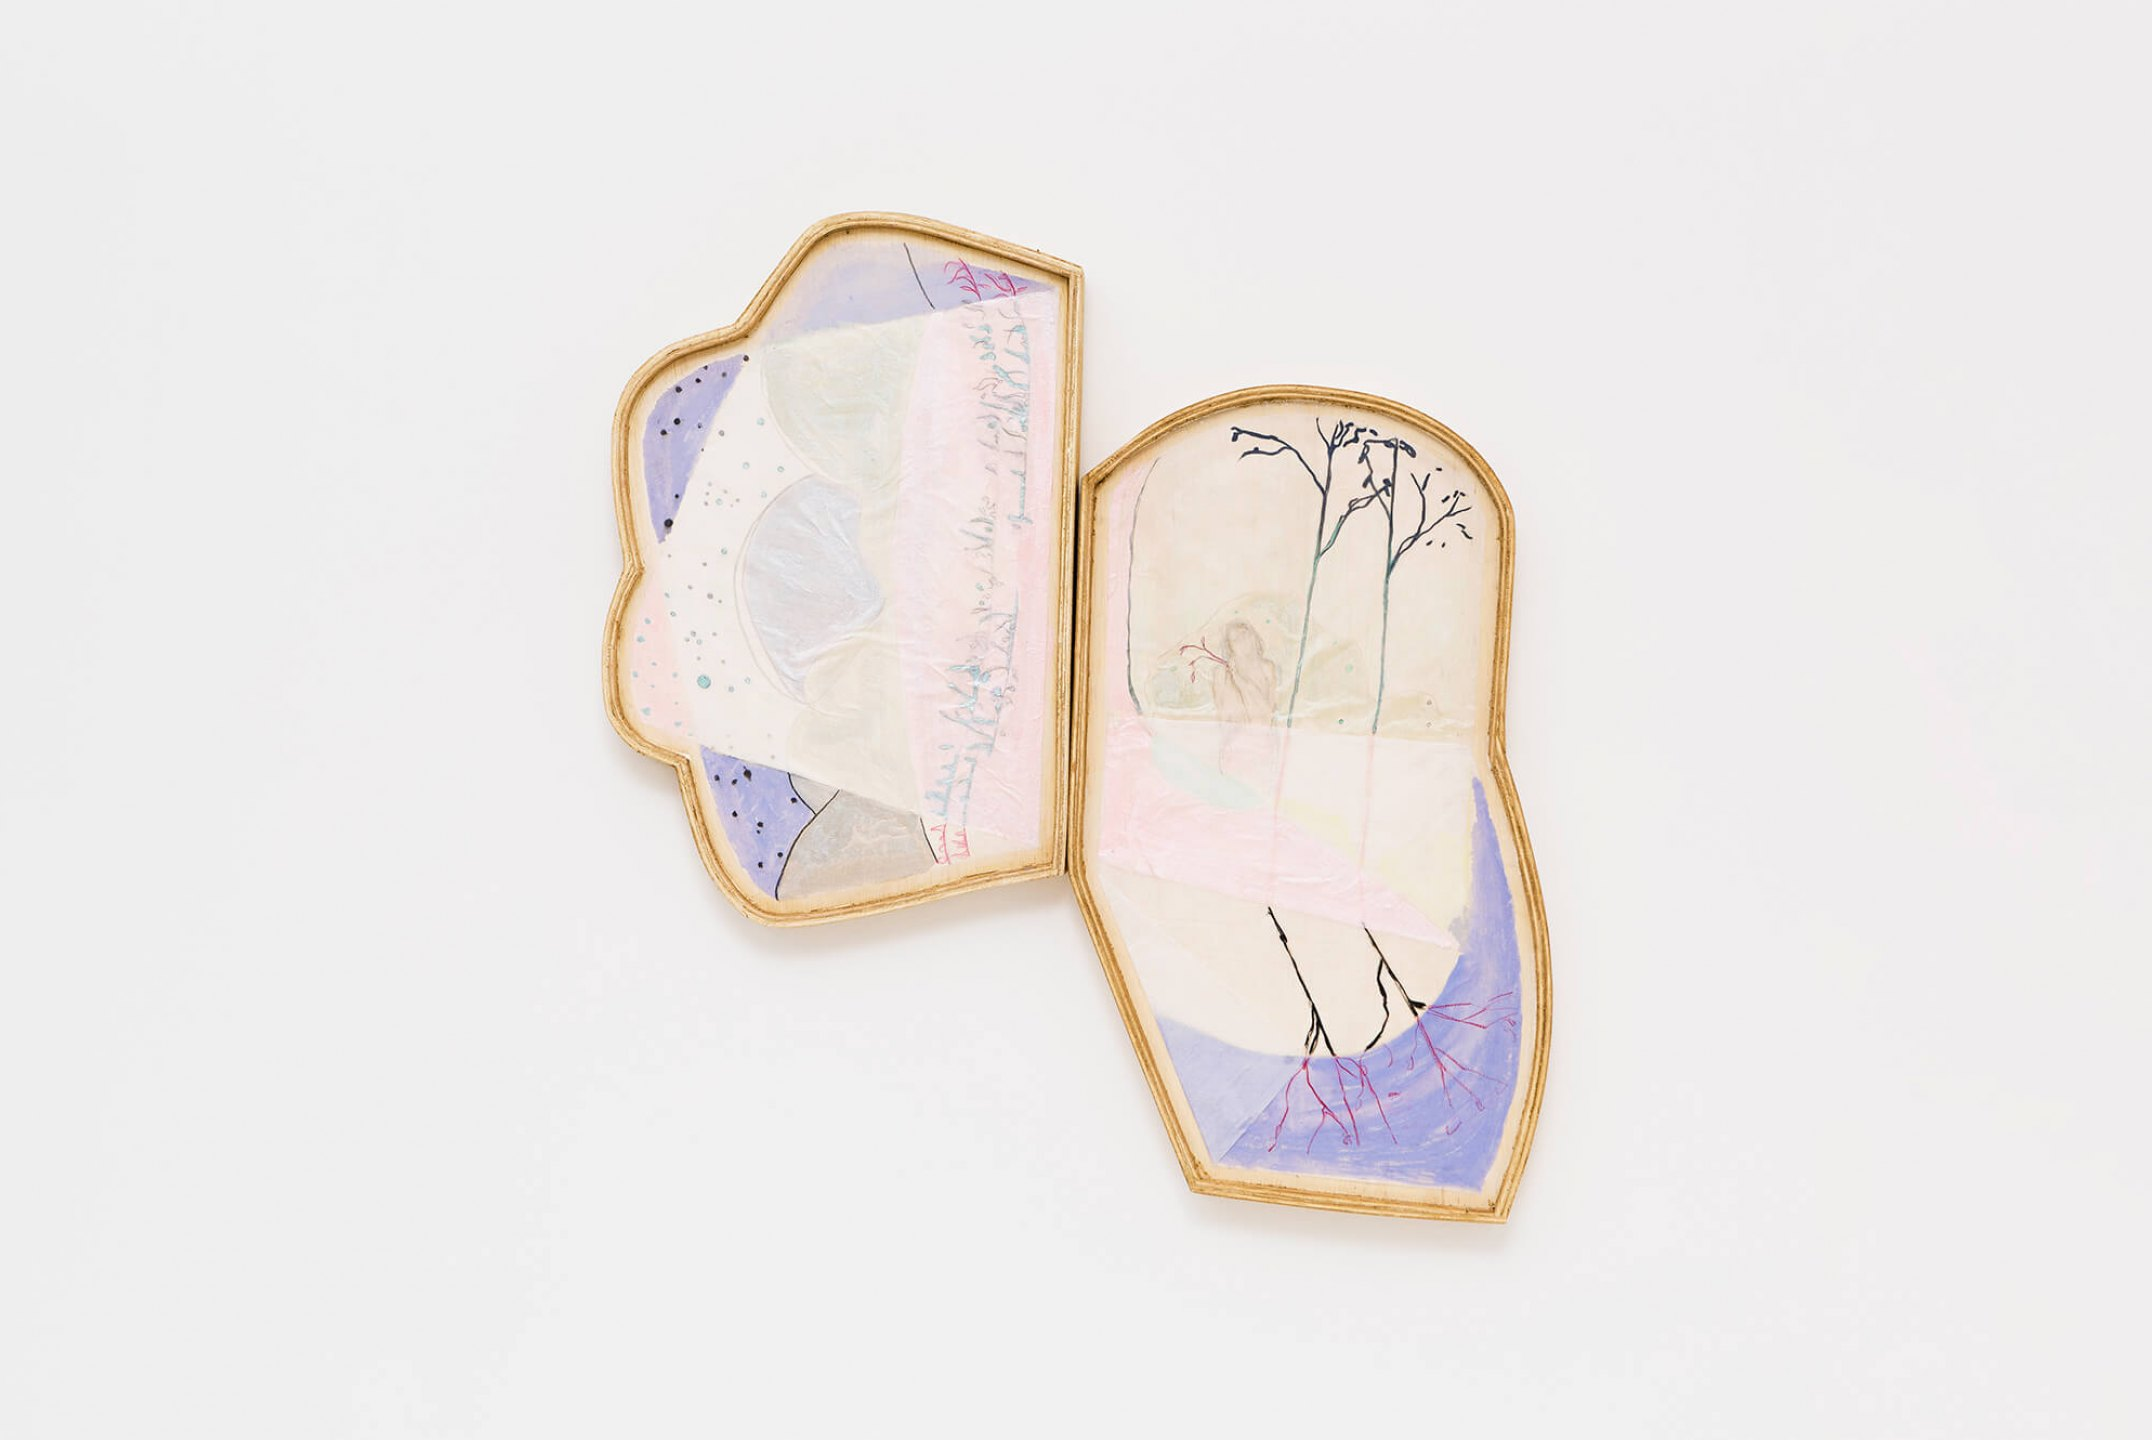 Marina Perez Simão, <em>Untitled,</em> 2015, pencil, acrylic, watercolor, iridescent pigment on korean paper folded and assembled on wood, 17 × 30 × 2 cm  - Mendes Wood DM